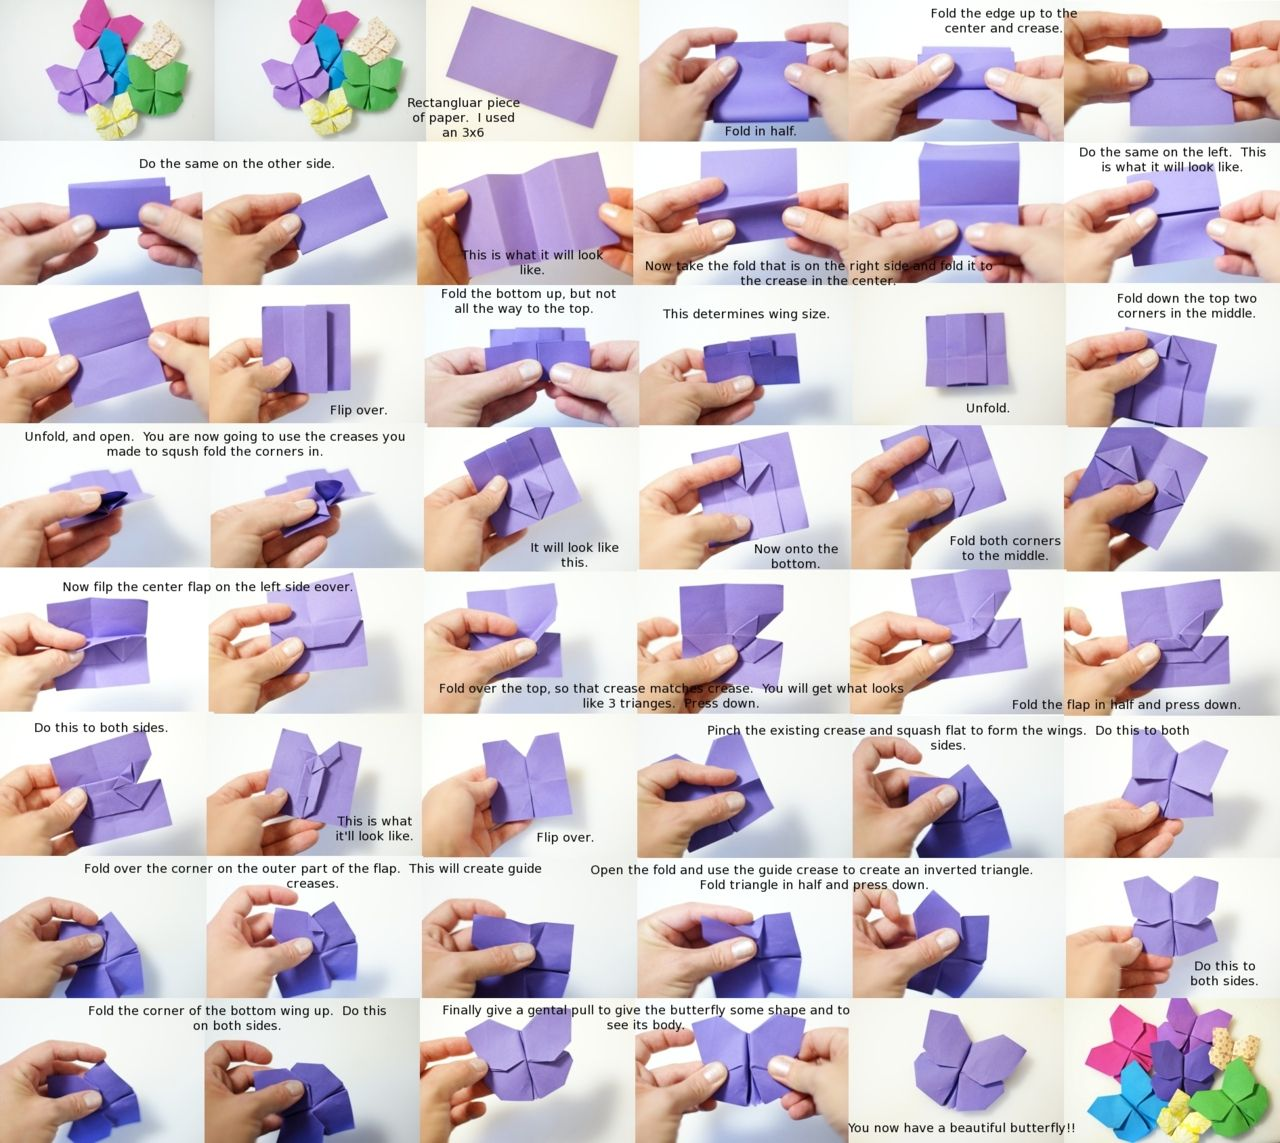 Diy Origami Butterfly Pinterest Ratrat Origamiorigami Rat Diagram Guide Another Easy And Clear Explanation Of All The Steps Good Job